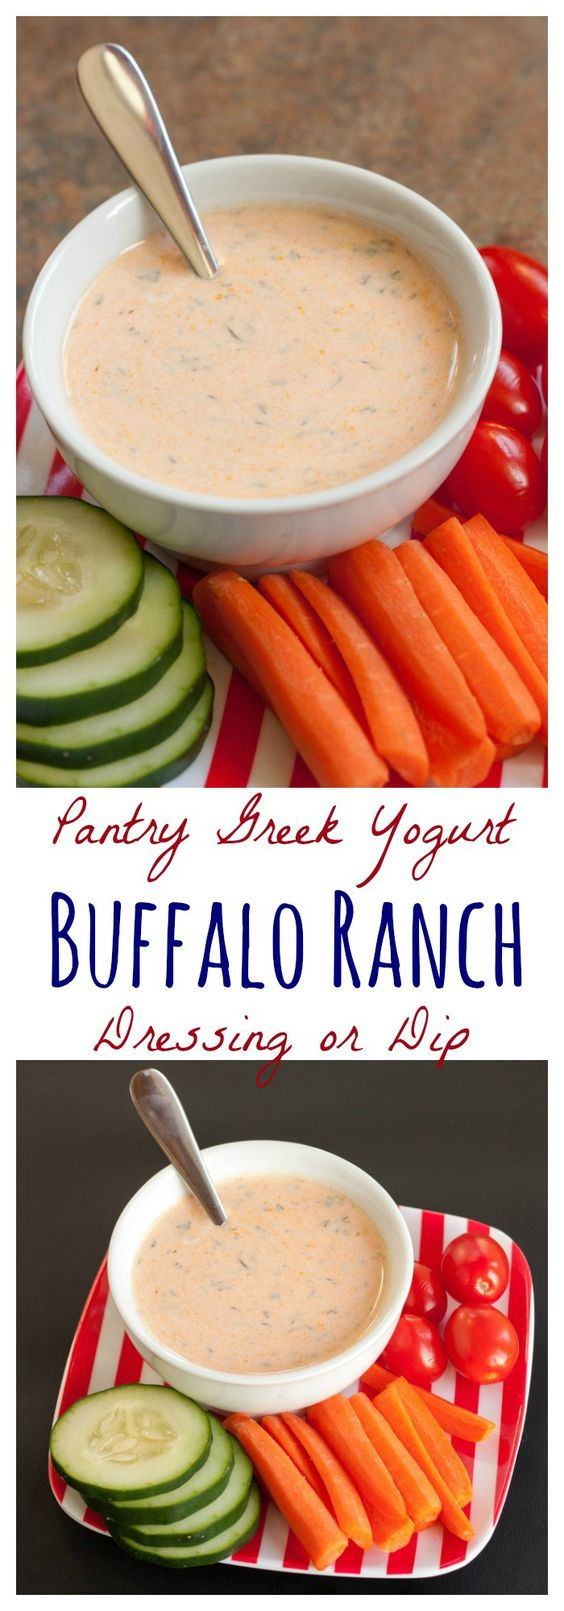 Pantry Greek Yogurt Buffalo Ranch Dressing or Dip - a healthy way to add a little kick to your salads or veggies with basic ingredients in your kitchen   cupcakesandkalechips.com   gluten free